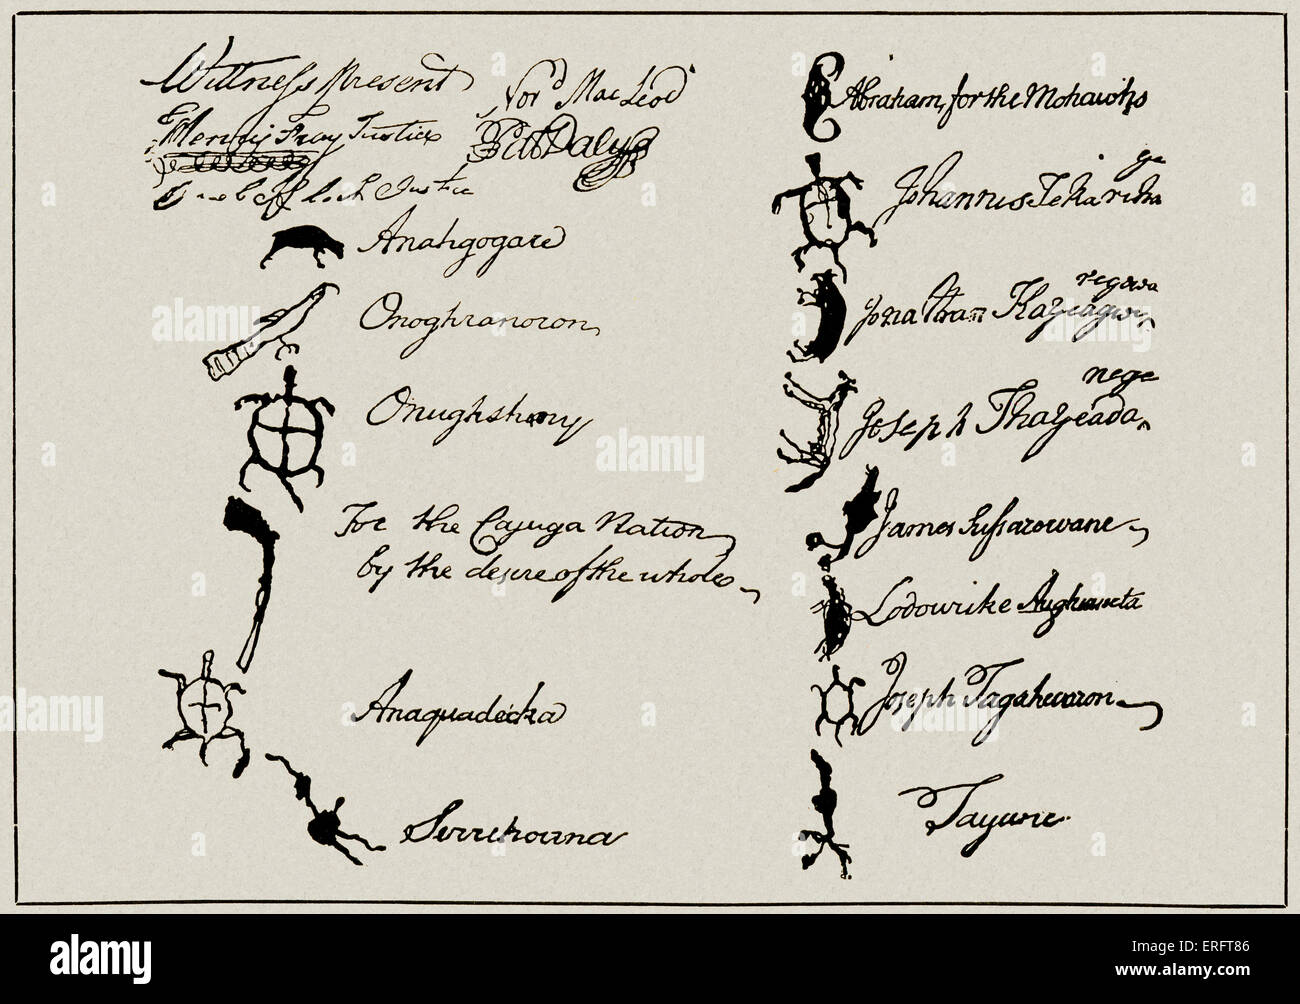 Pictograms of the tribal chiefs of the Six Nations at the bottom of a contract made with Thomas and Richard Penn. - Stock Image